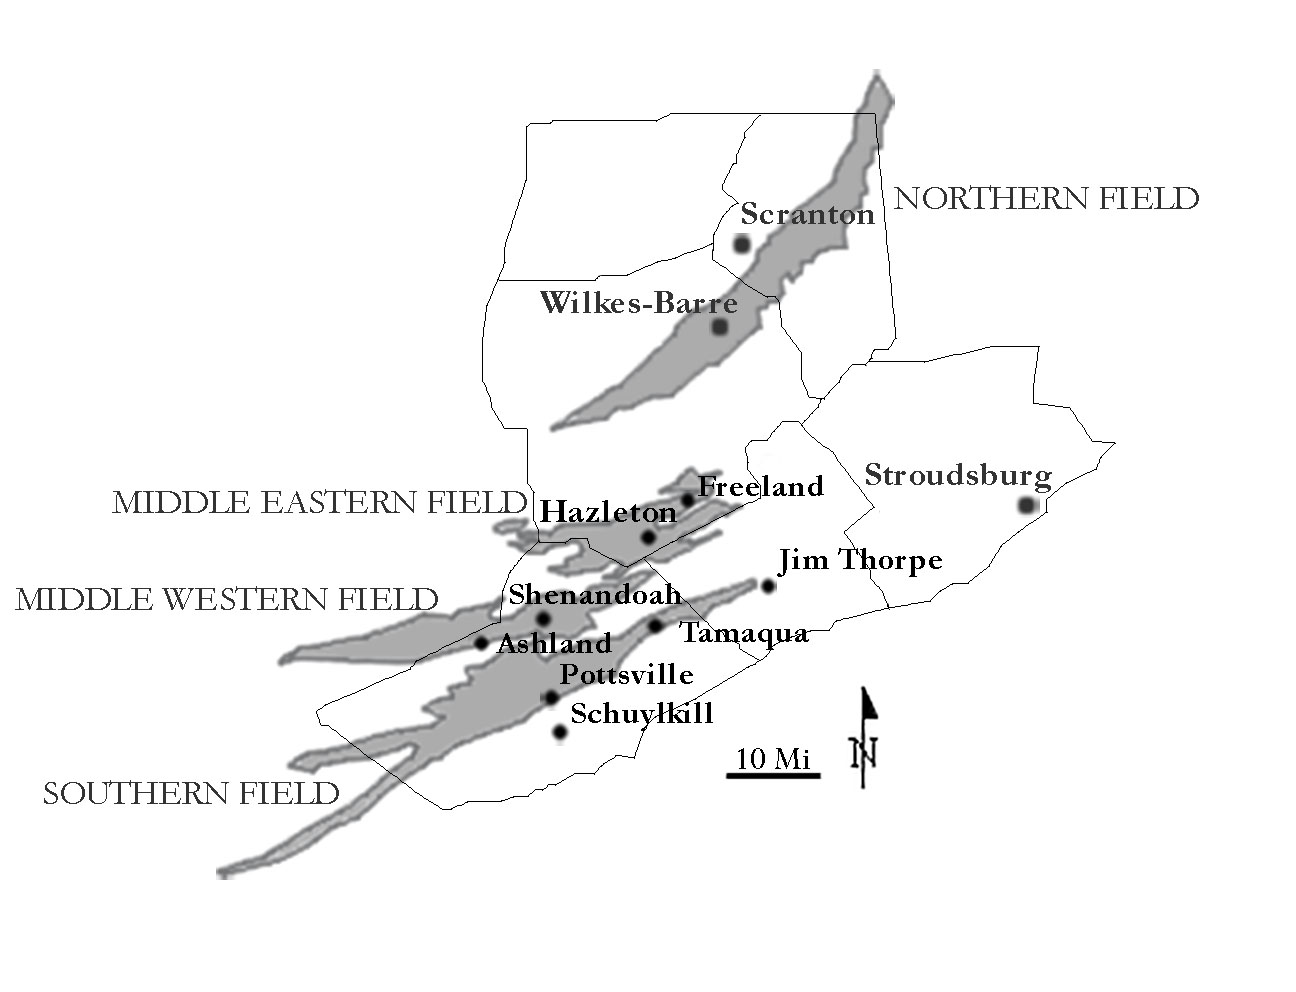 Map of Northeastern Pennsylvania showing the three anthracite fields and some of the cities and towns in the region. Image drawn by V. Camille Westmont, courtesy of the author.